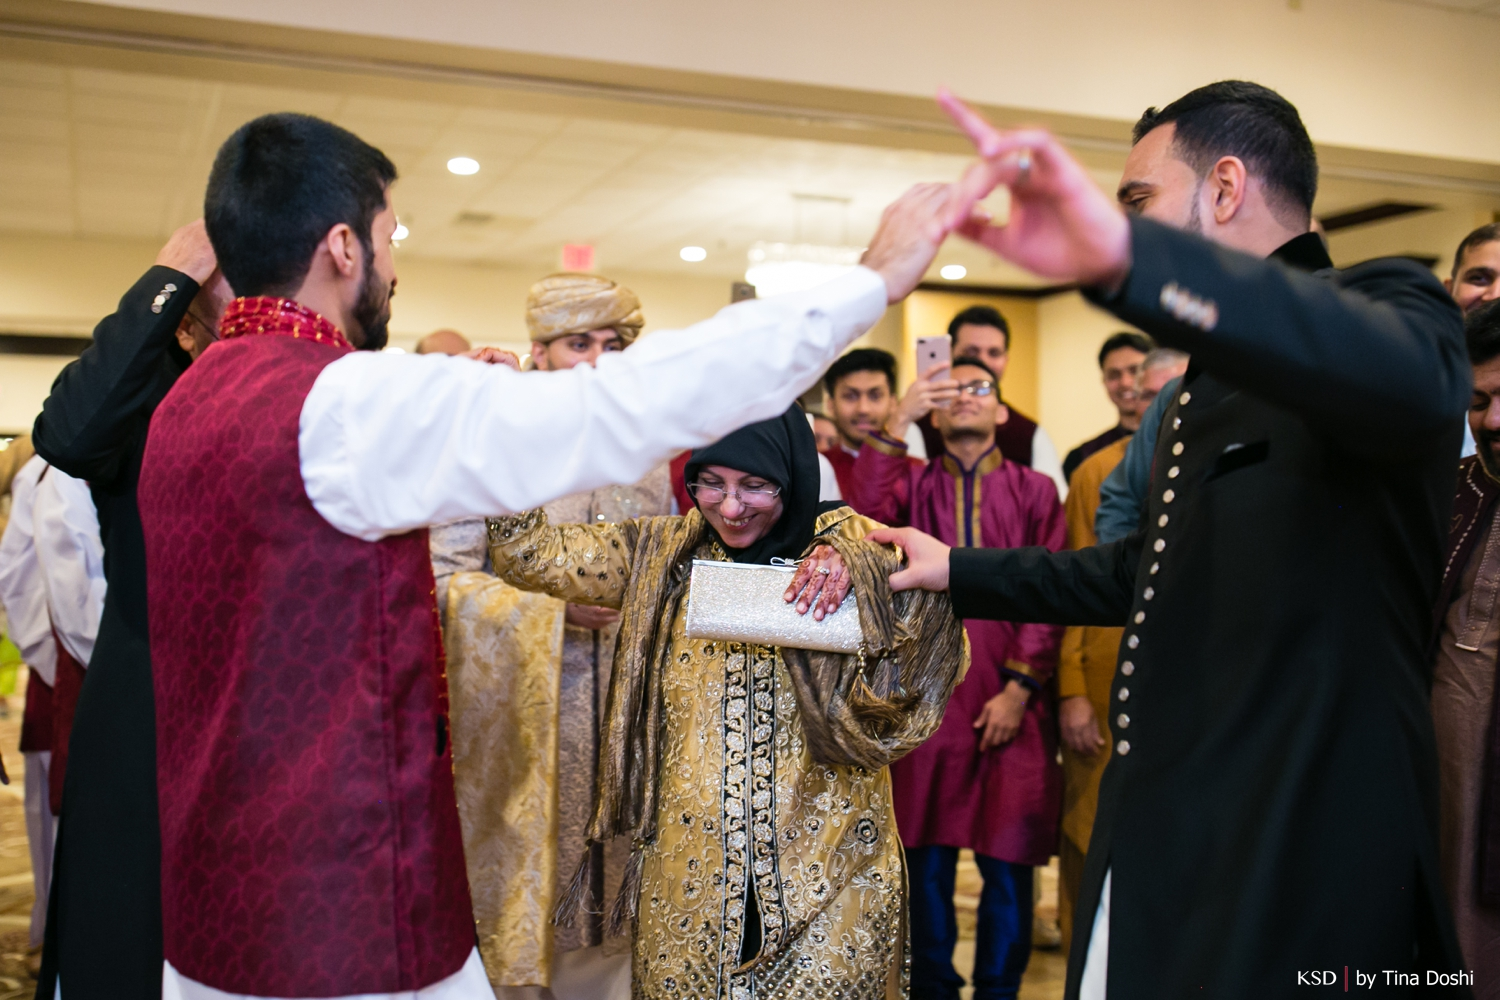 nj_south_asian_wedding_0038